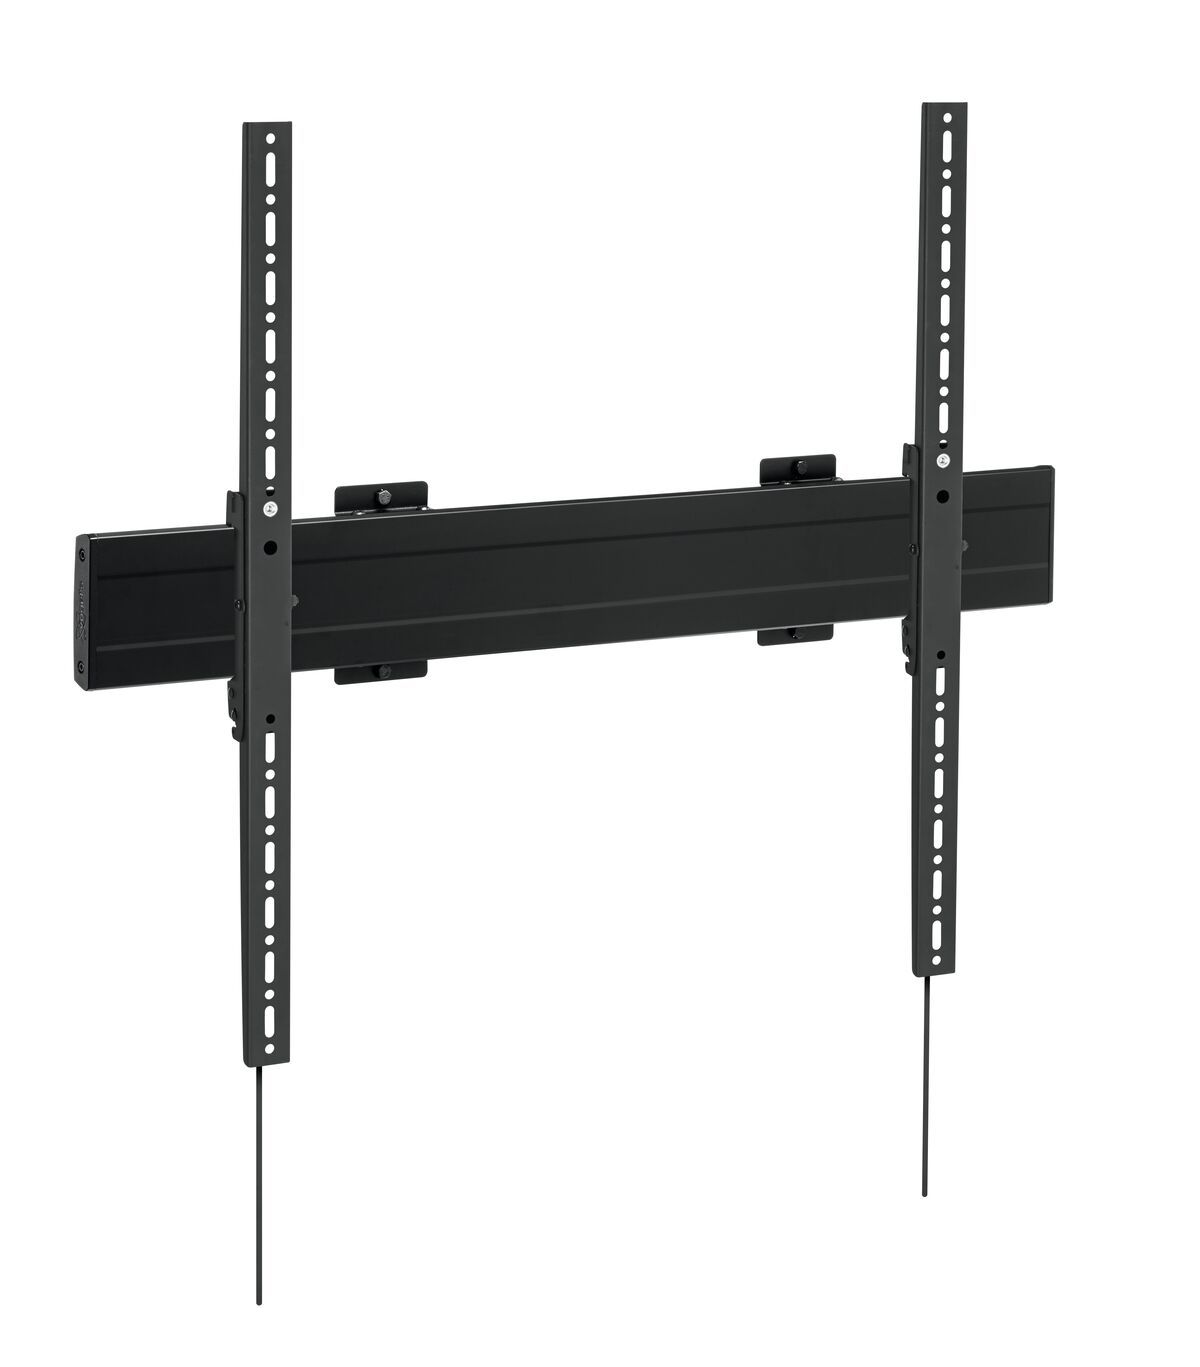 Vogel's PFS 3208 Display-Adapterstrips - Front view